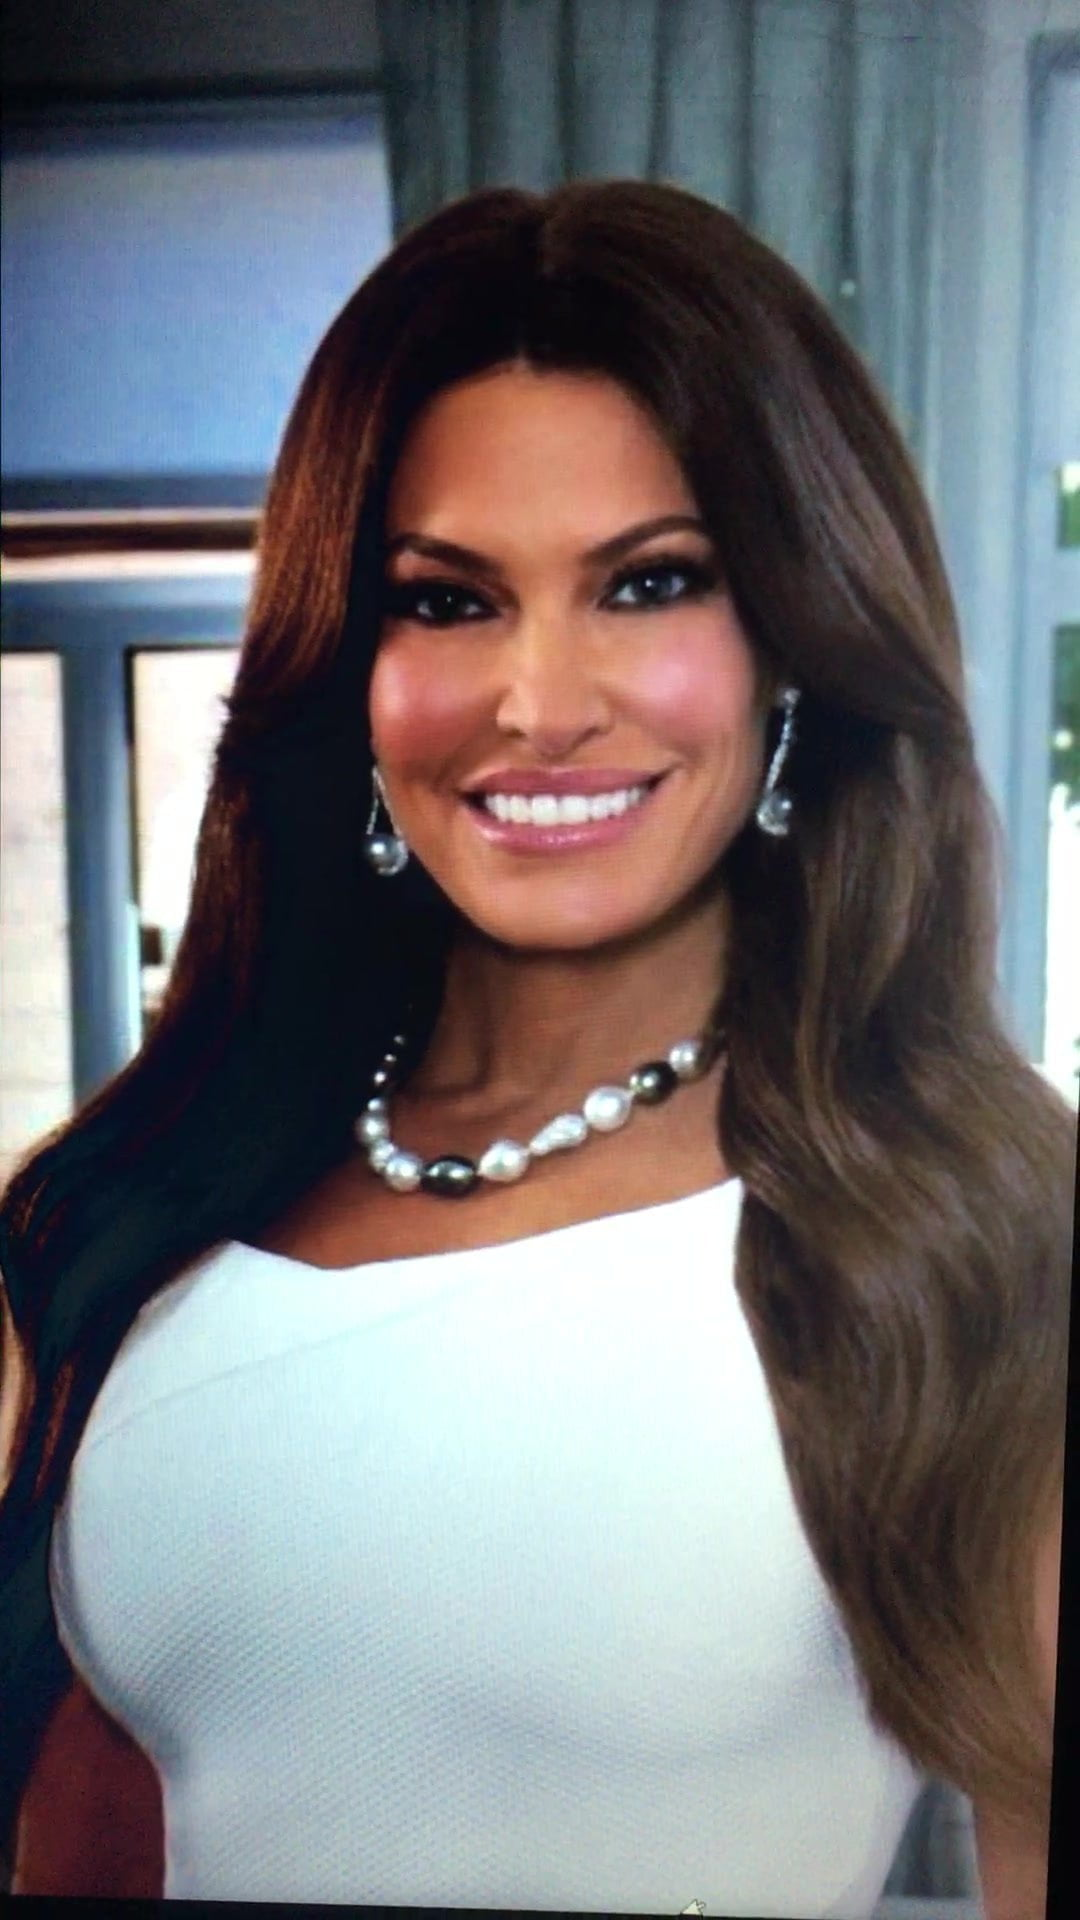 from Odin is kimberly guilfoyle a transgender